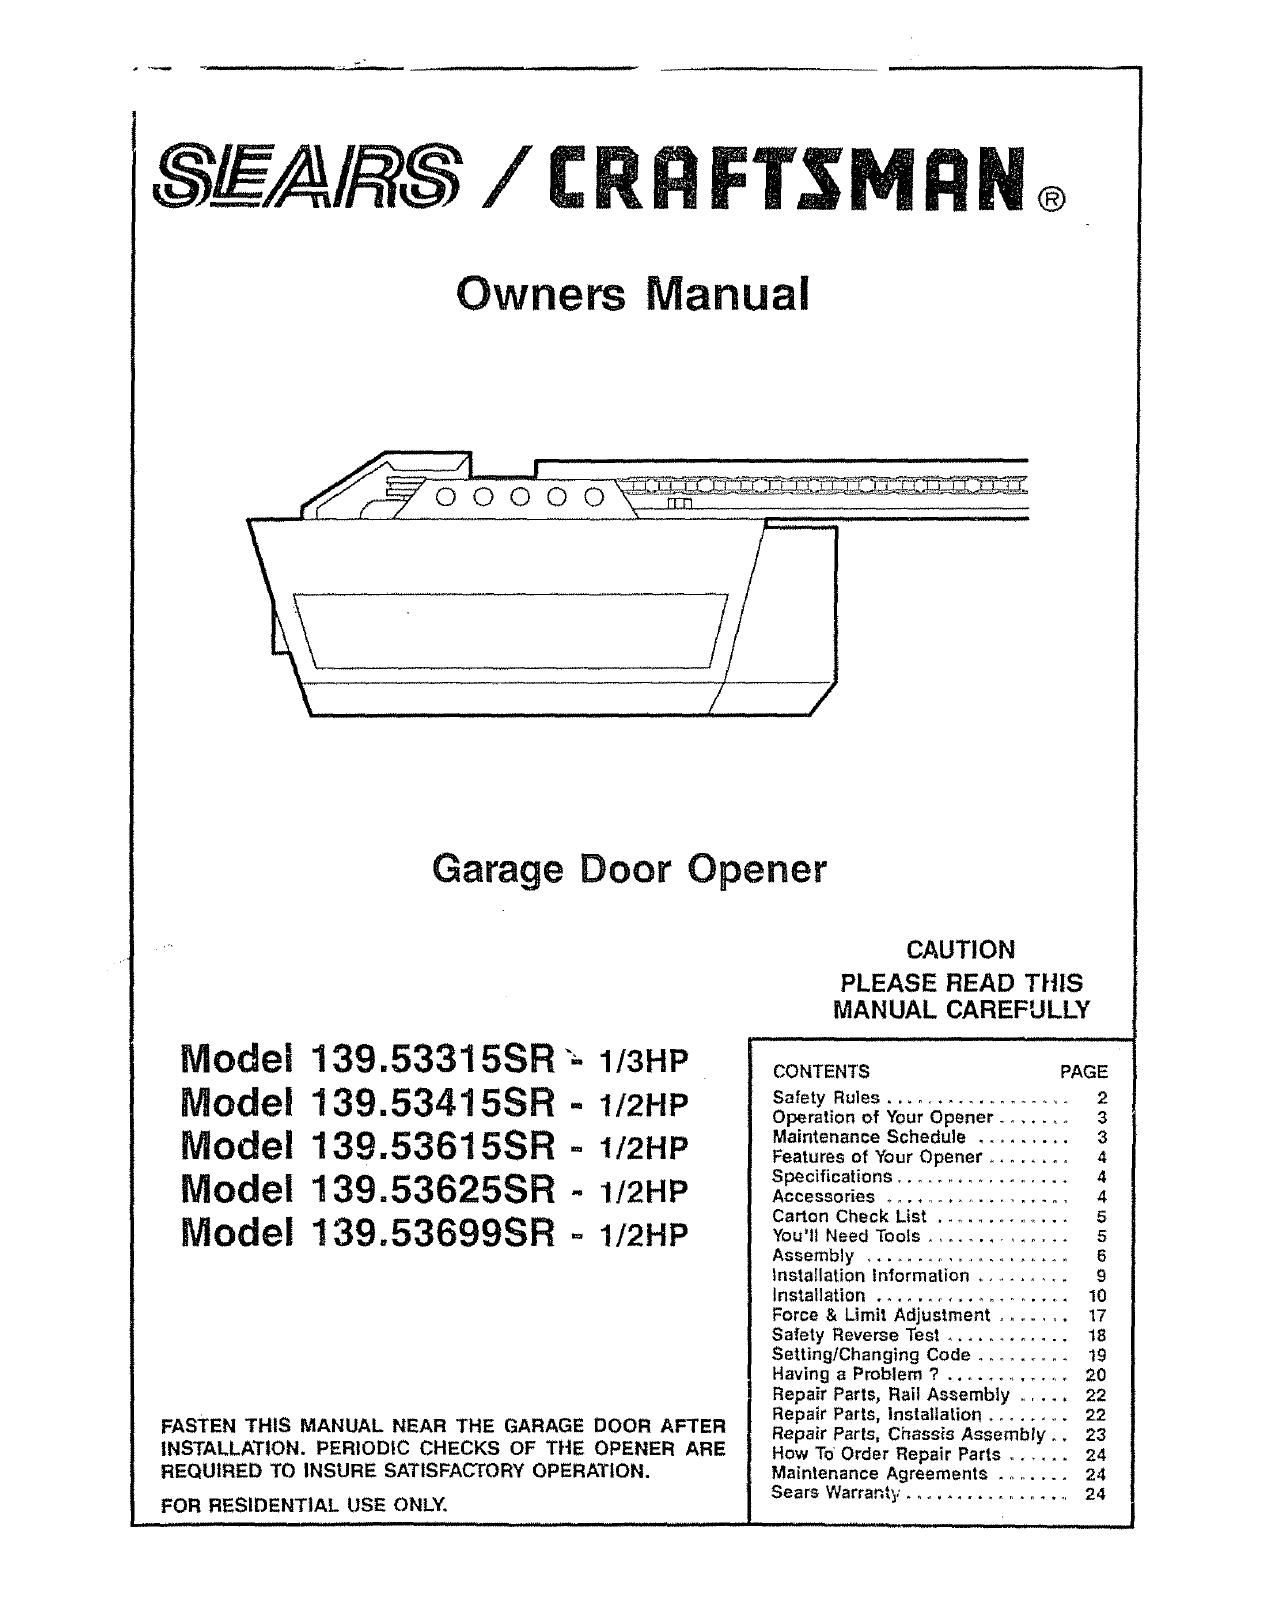 Craftsman garage door opener 13953315sr user guide craftsman garage door opener 13953315sr user guide manualsonline asfbconference2016 Images